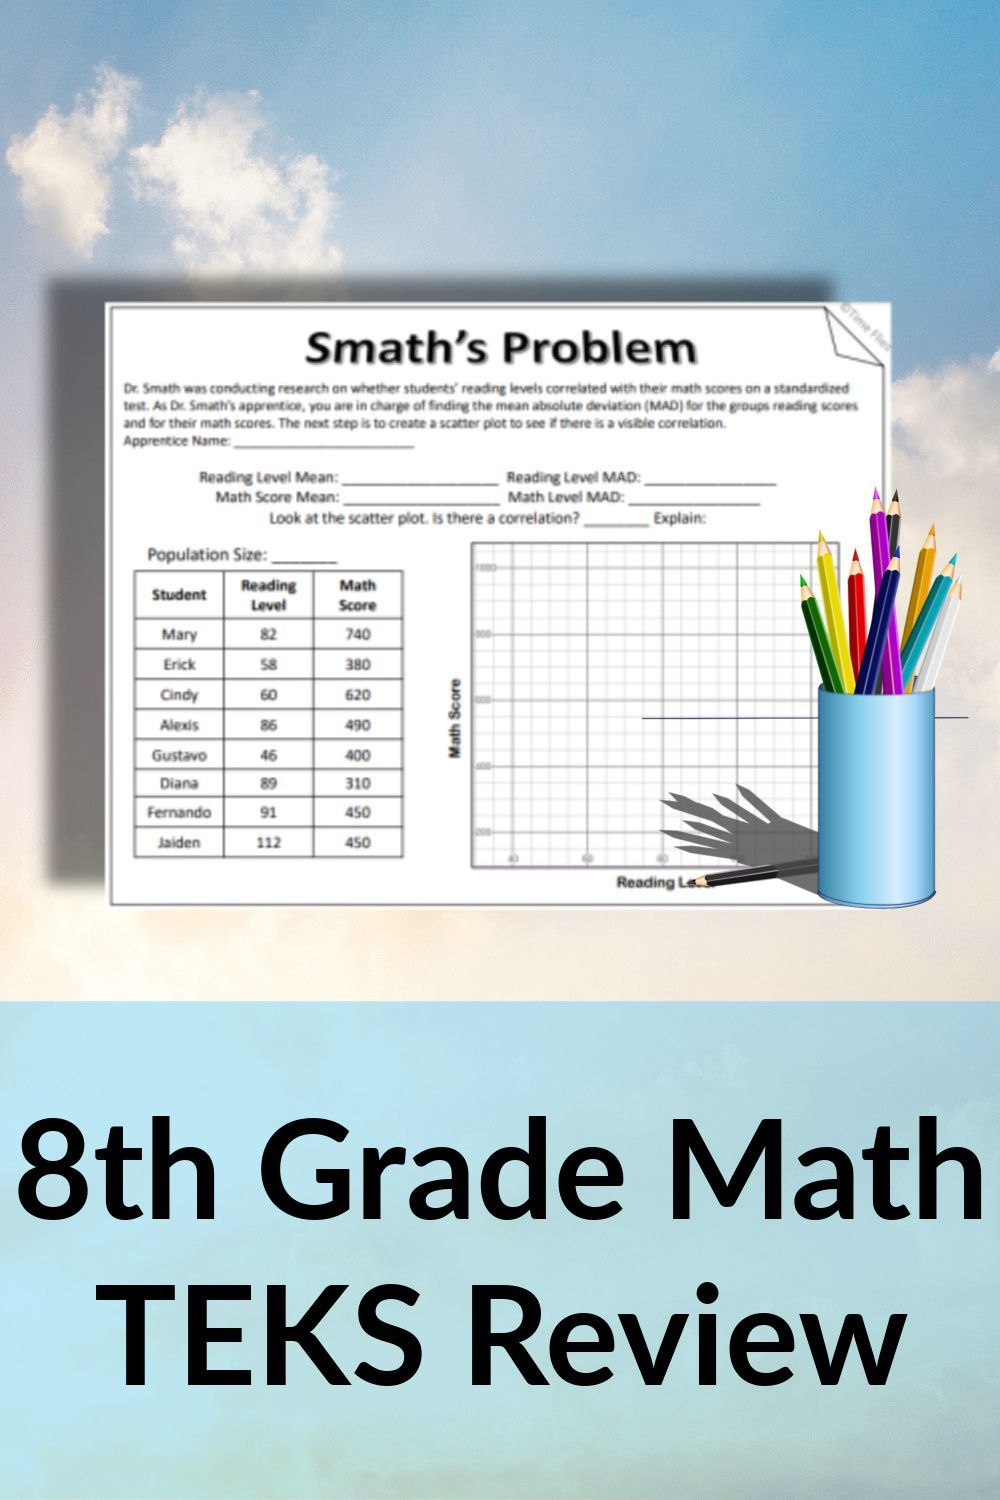 Math Staar Review For 8th Graders Staar Review Math Staar Math 8th Grade Math [ 1500 x 1000 Pixel ]